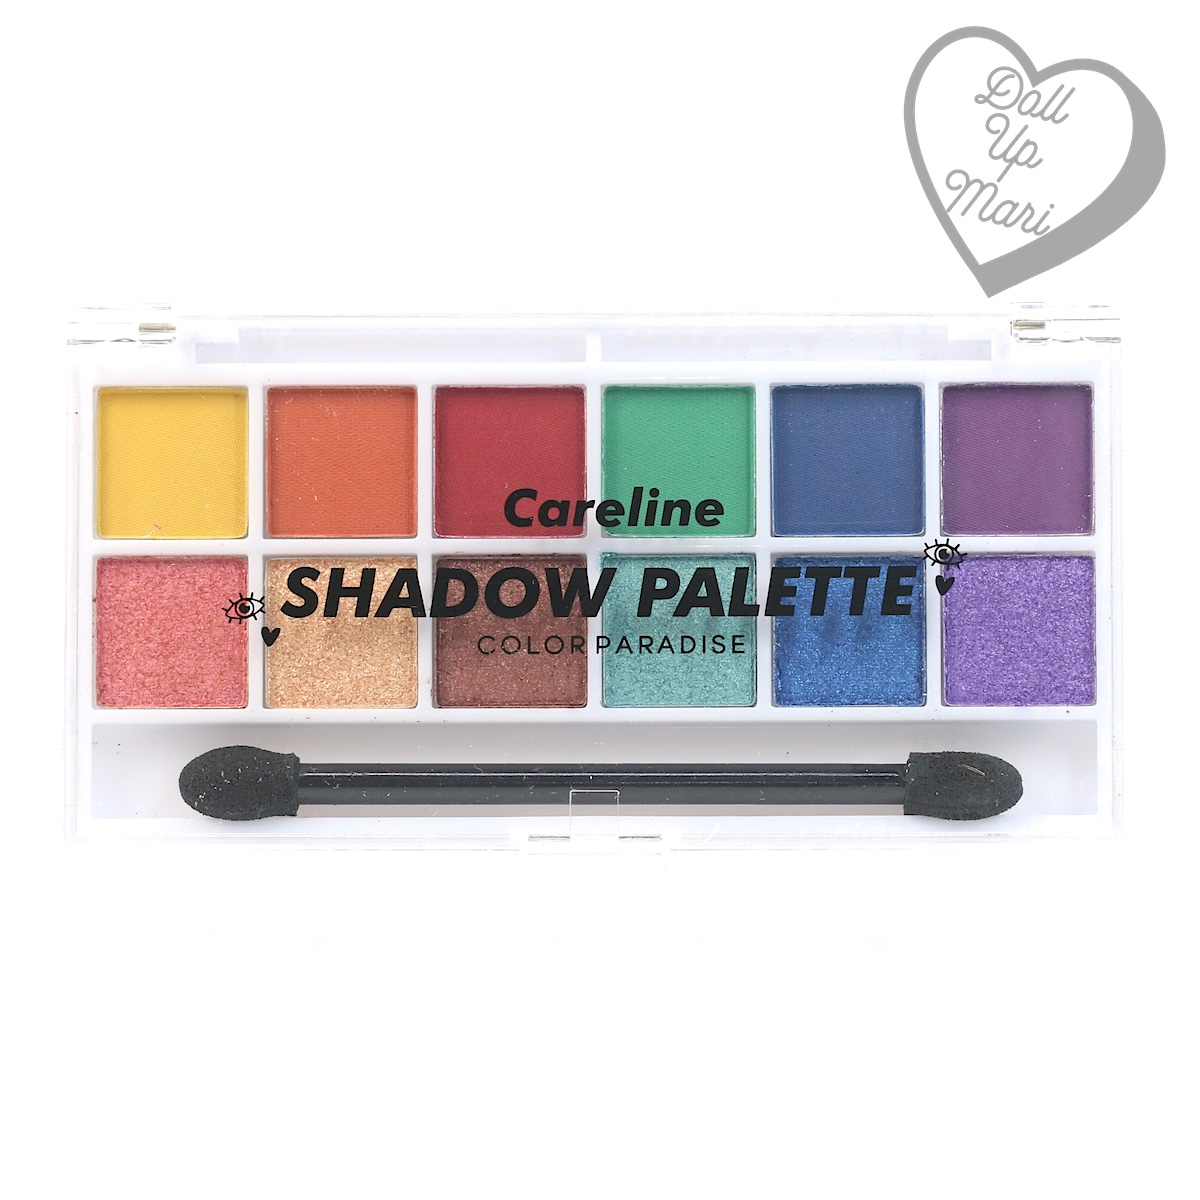 Careline Shadow Palette in Color Paradise